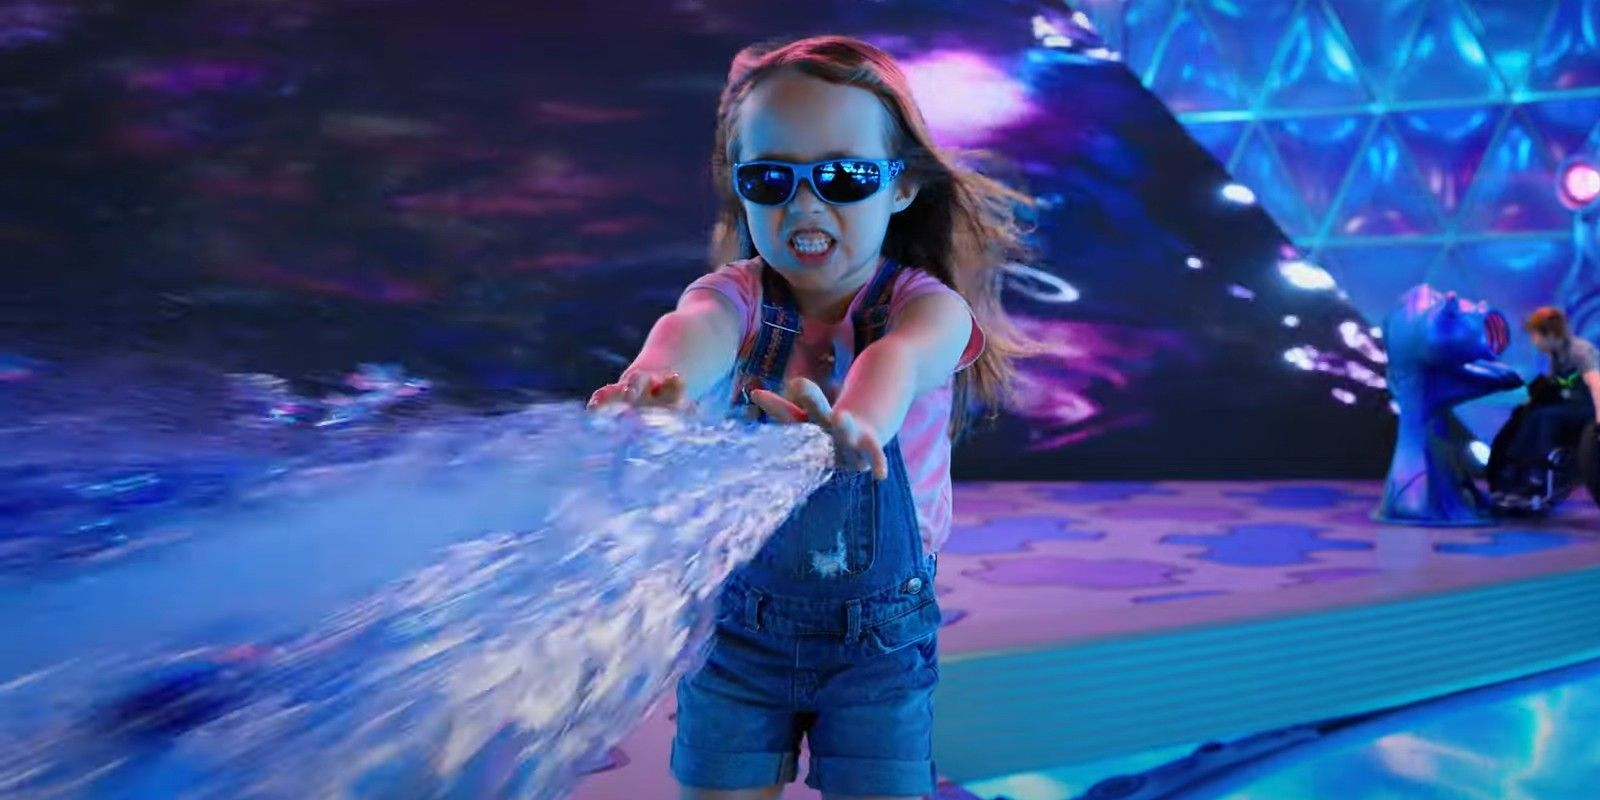 Sharkboy & Lavagirl's Kids Save The Day In We Can Be Heroes Trailer